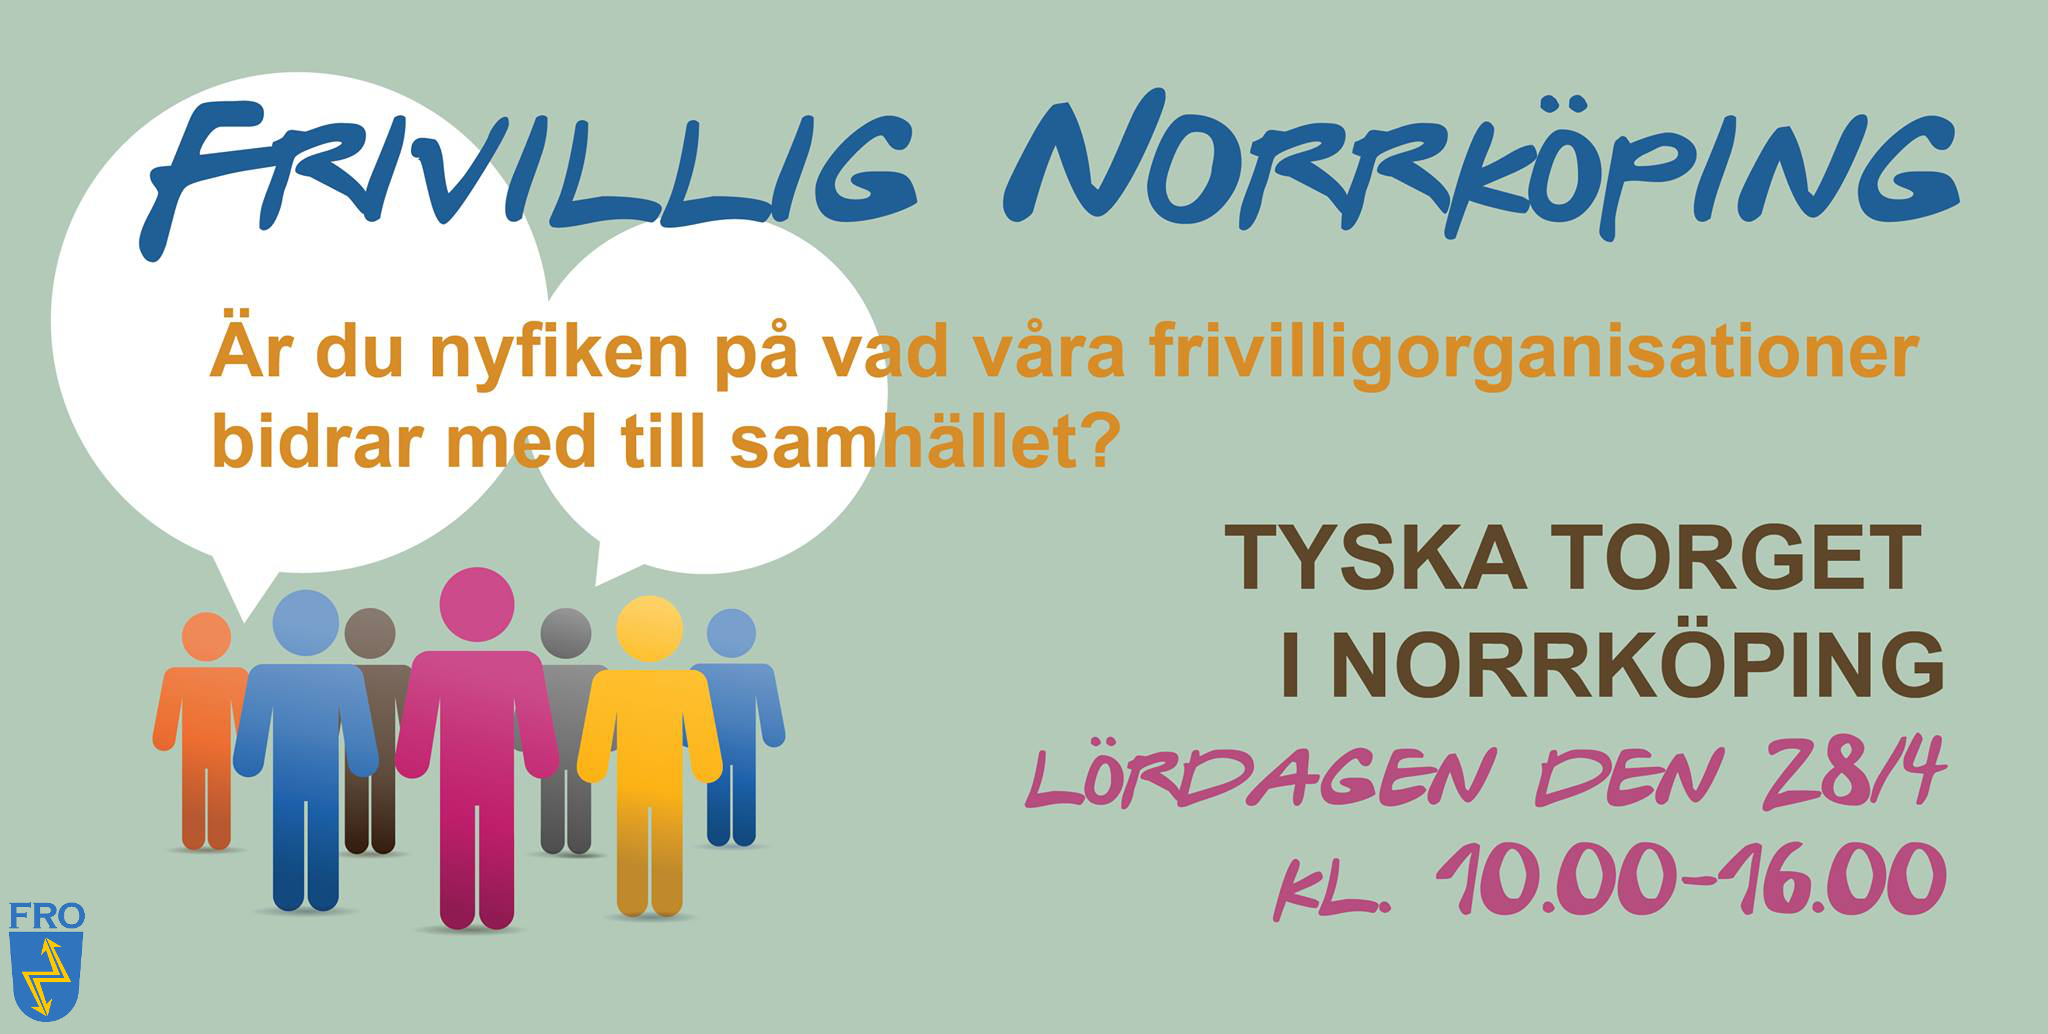 FRO Frivillig Norrkoping